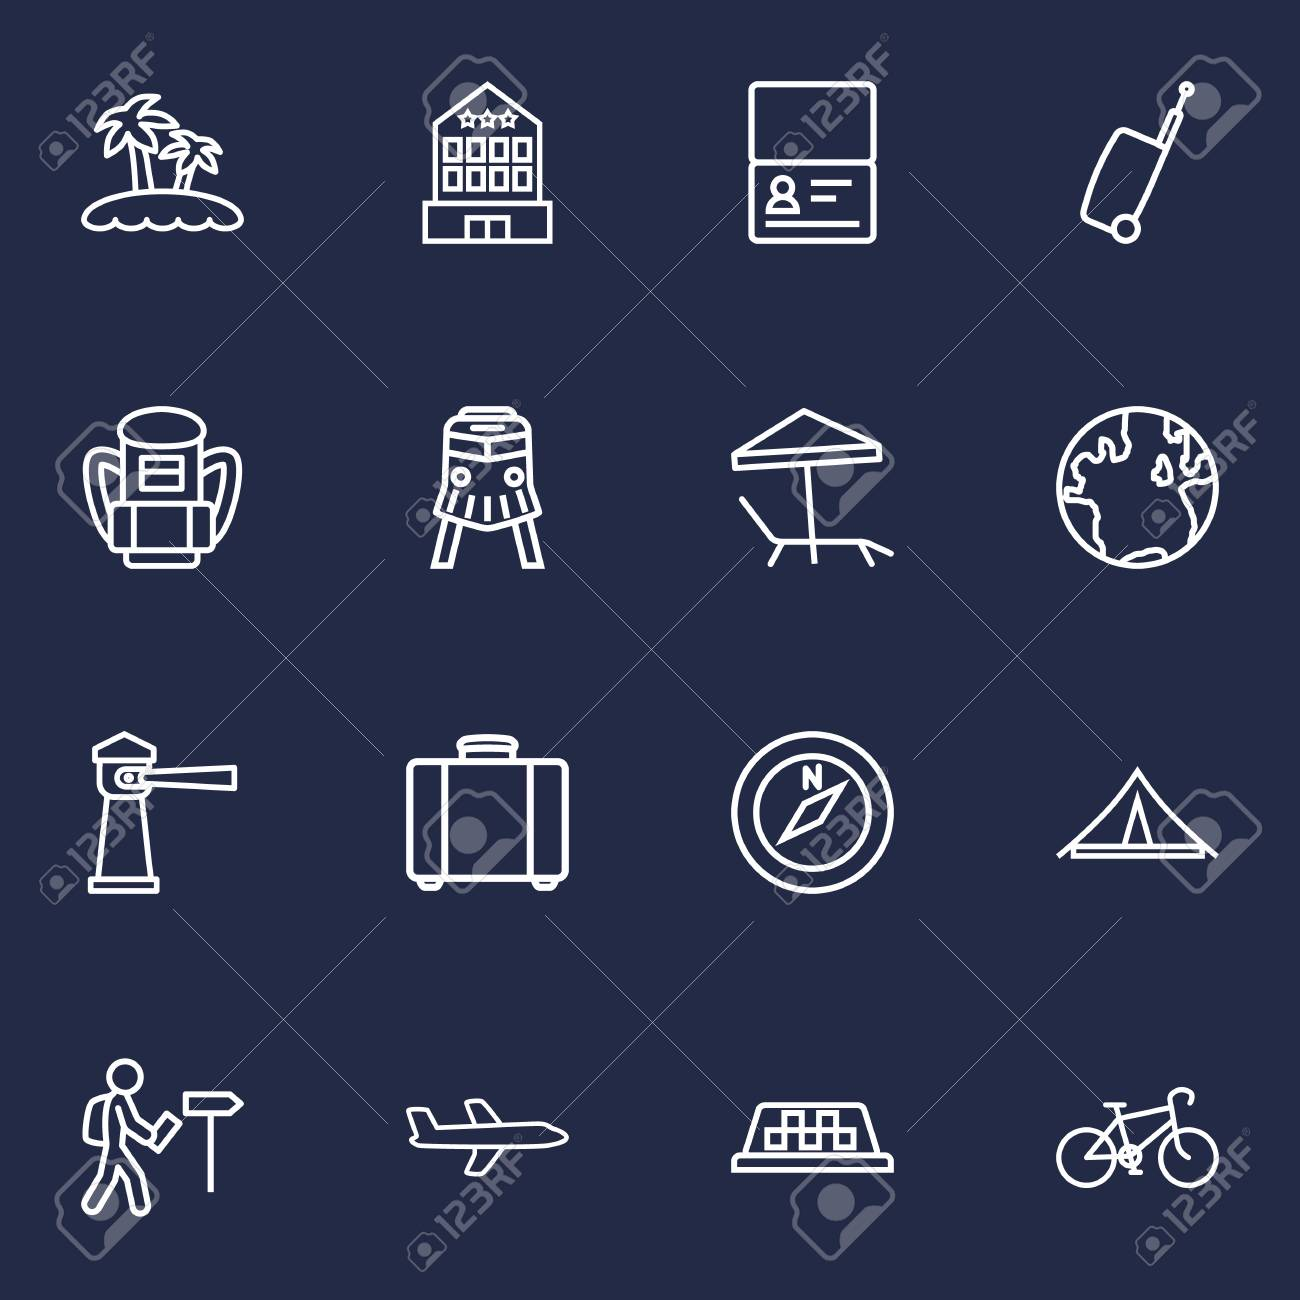 Set Of 16 Relax Outline Icons Setcollection Certificate Bike Electric Circuit Symbol Element Illustration Vectorielle Libre De Banque Dimages Taxi And Other Elements